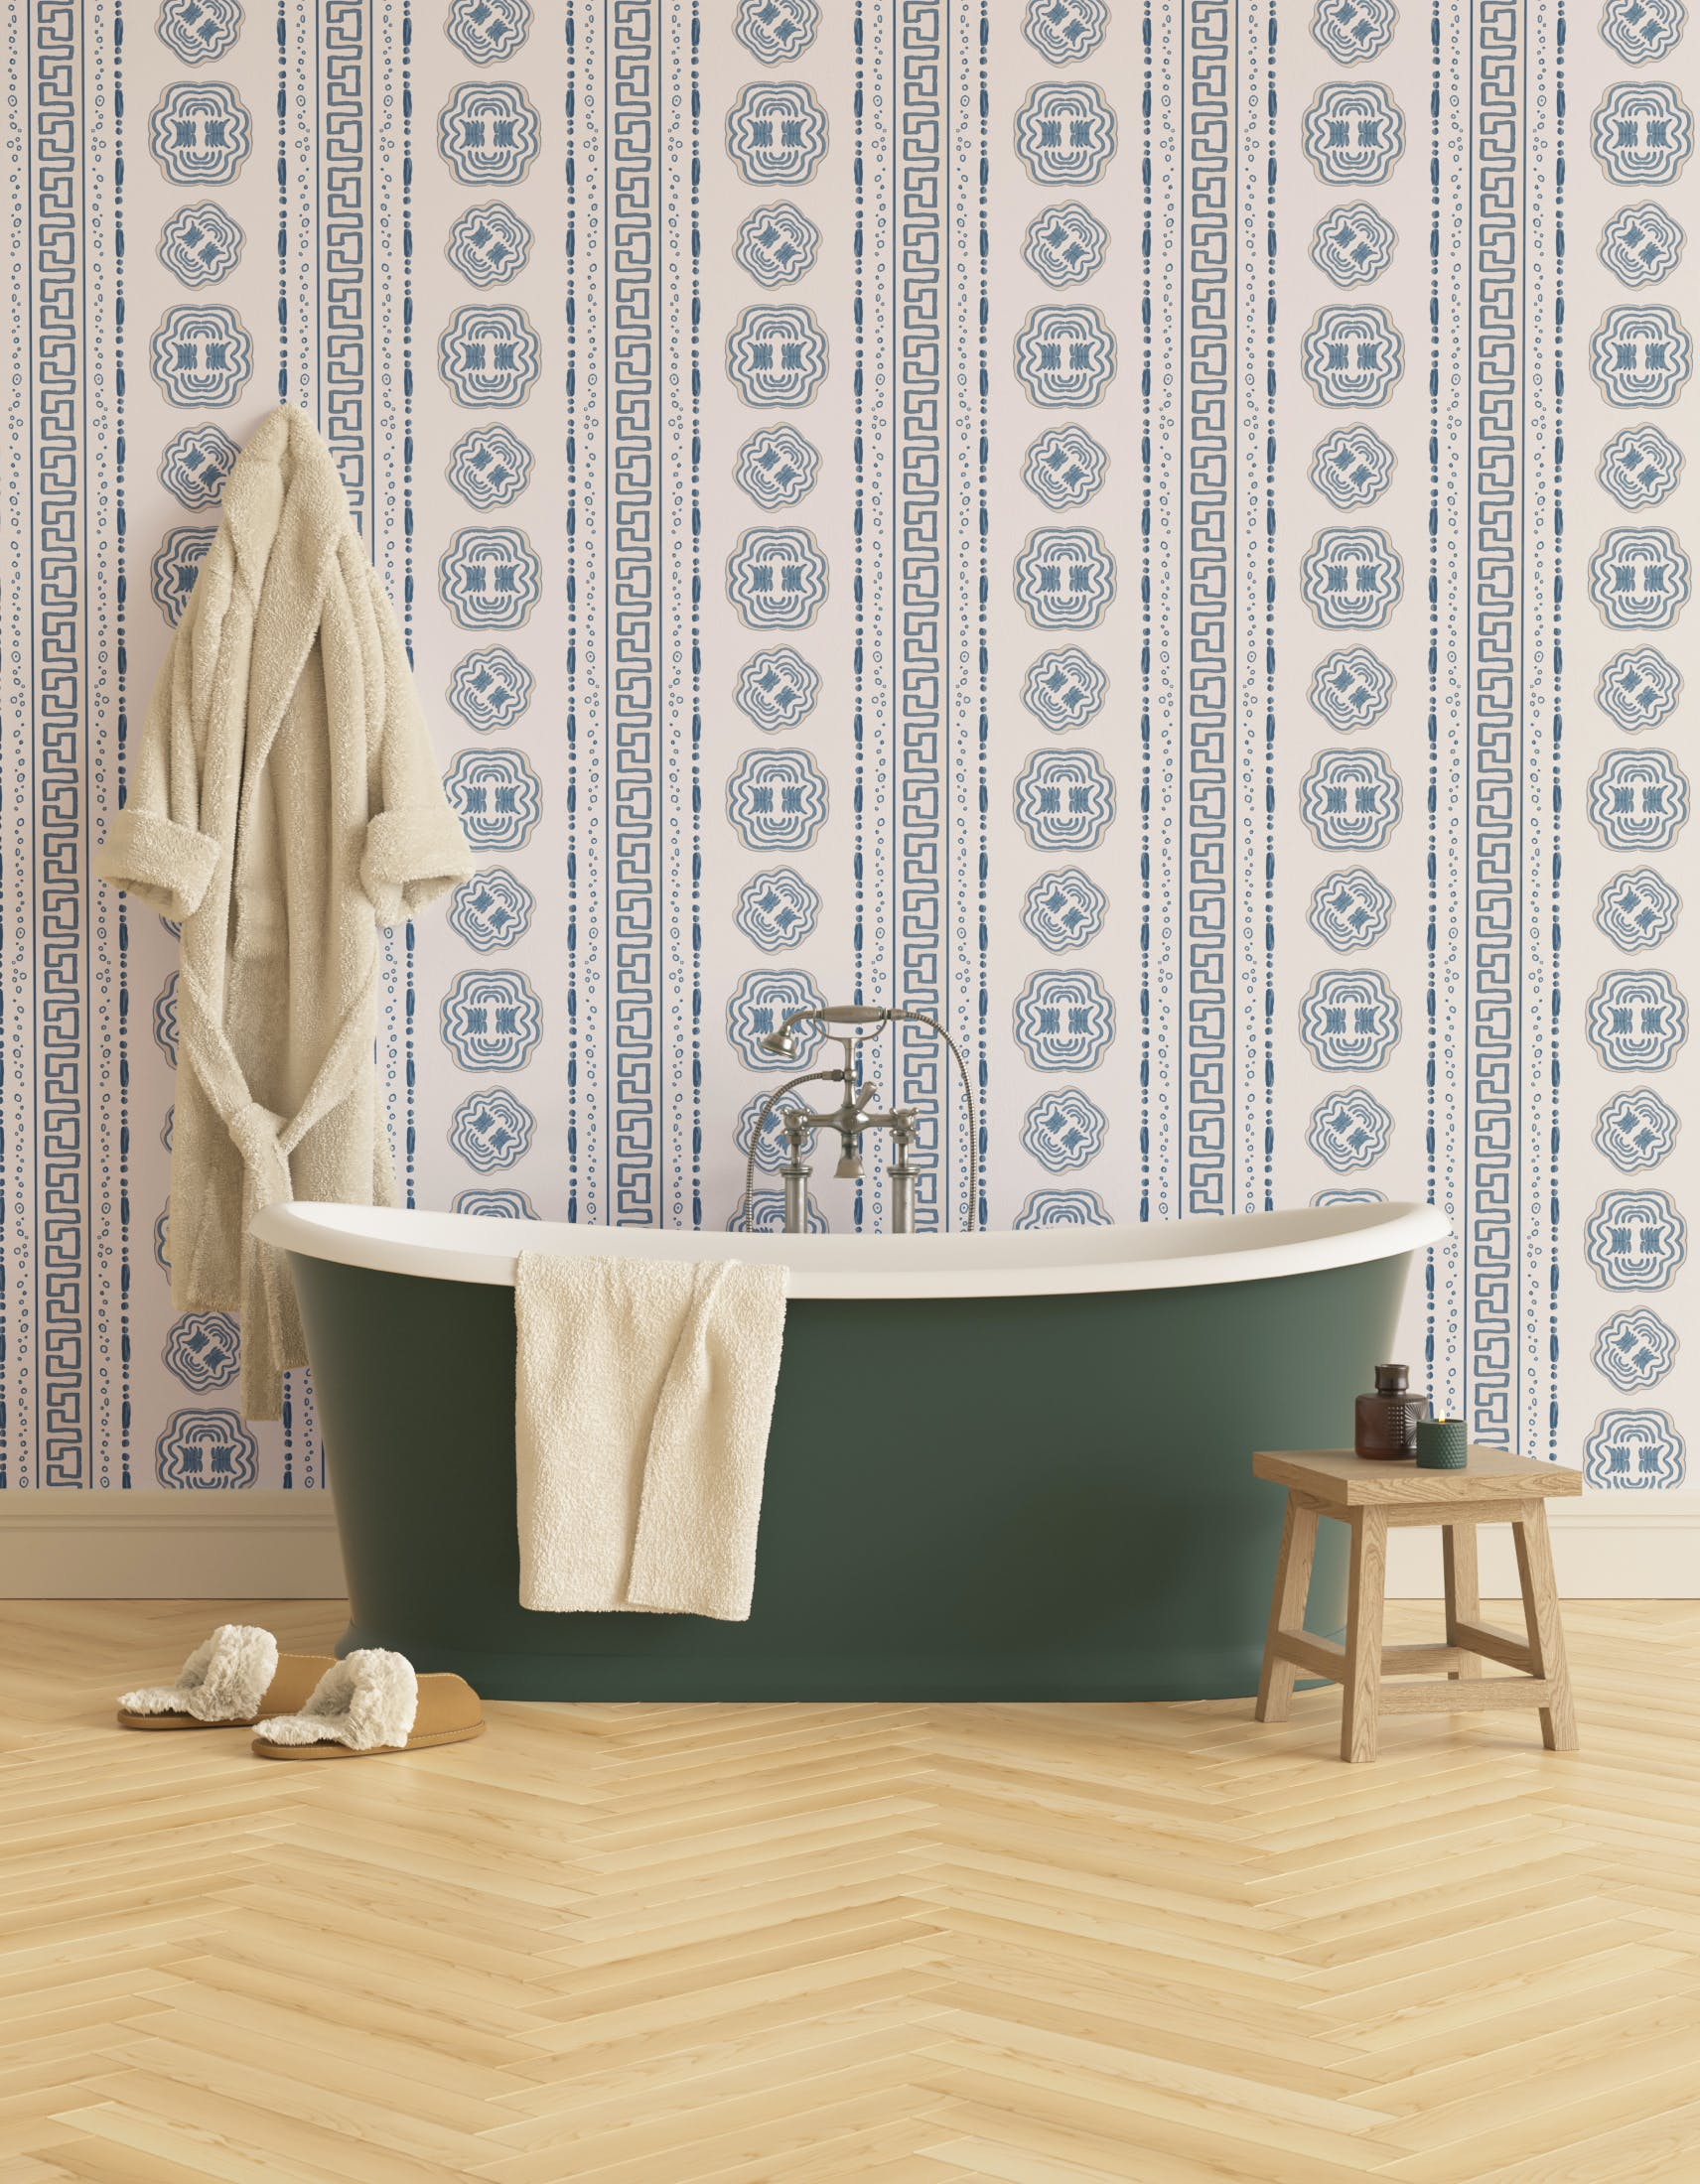 Bathroom decorated with Lick x Lottie McDowell Hestia 01 greek patterened wallpaper